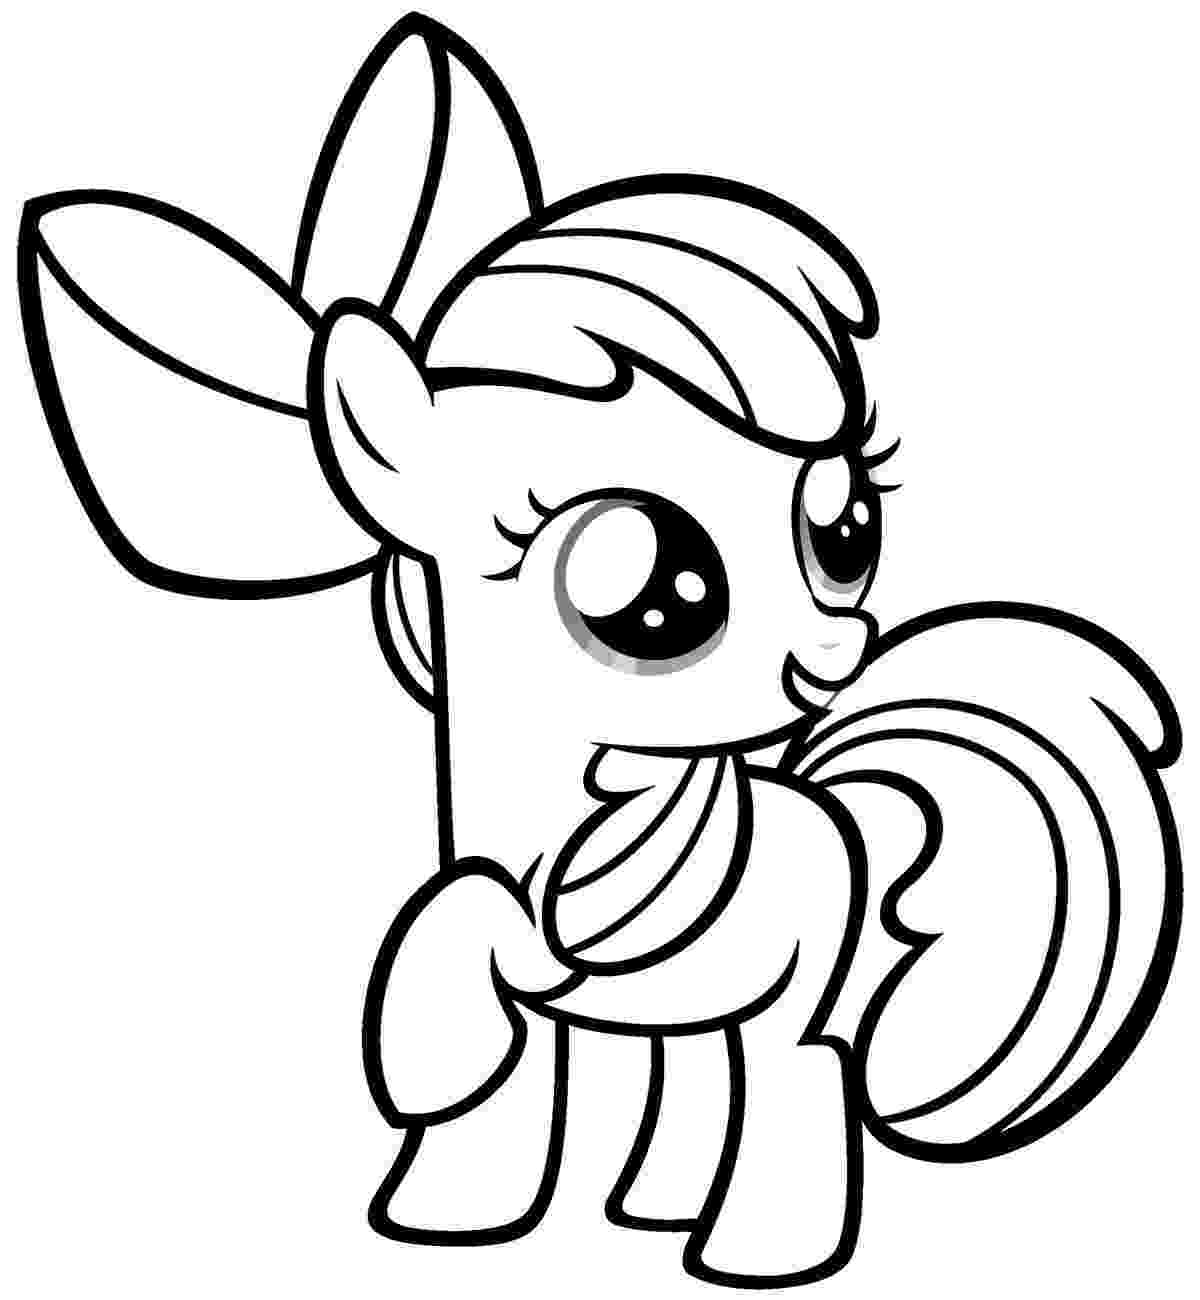 my little pony coloring sheets free printable my little pony coloring pages for kids pony my little coloring sheets